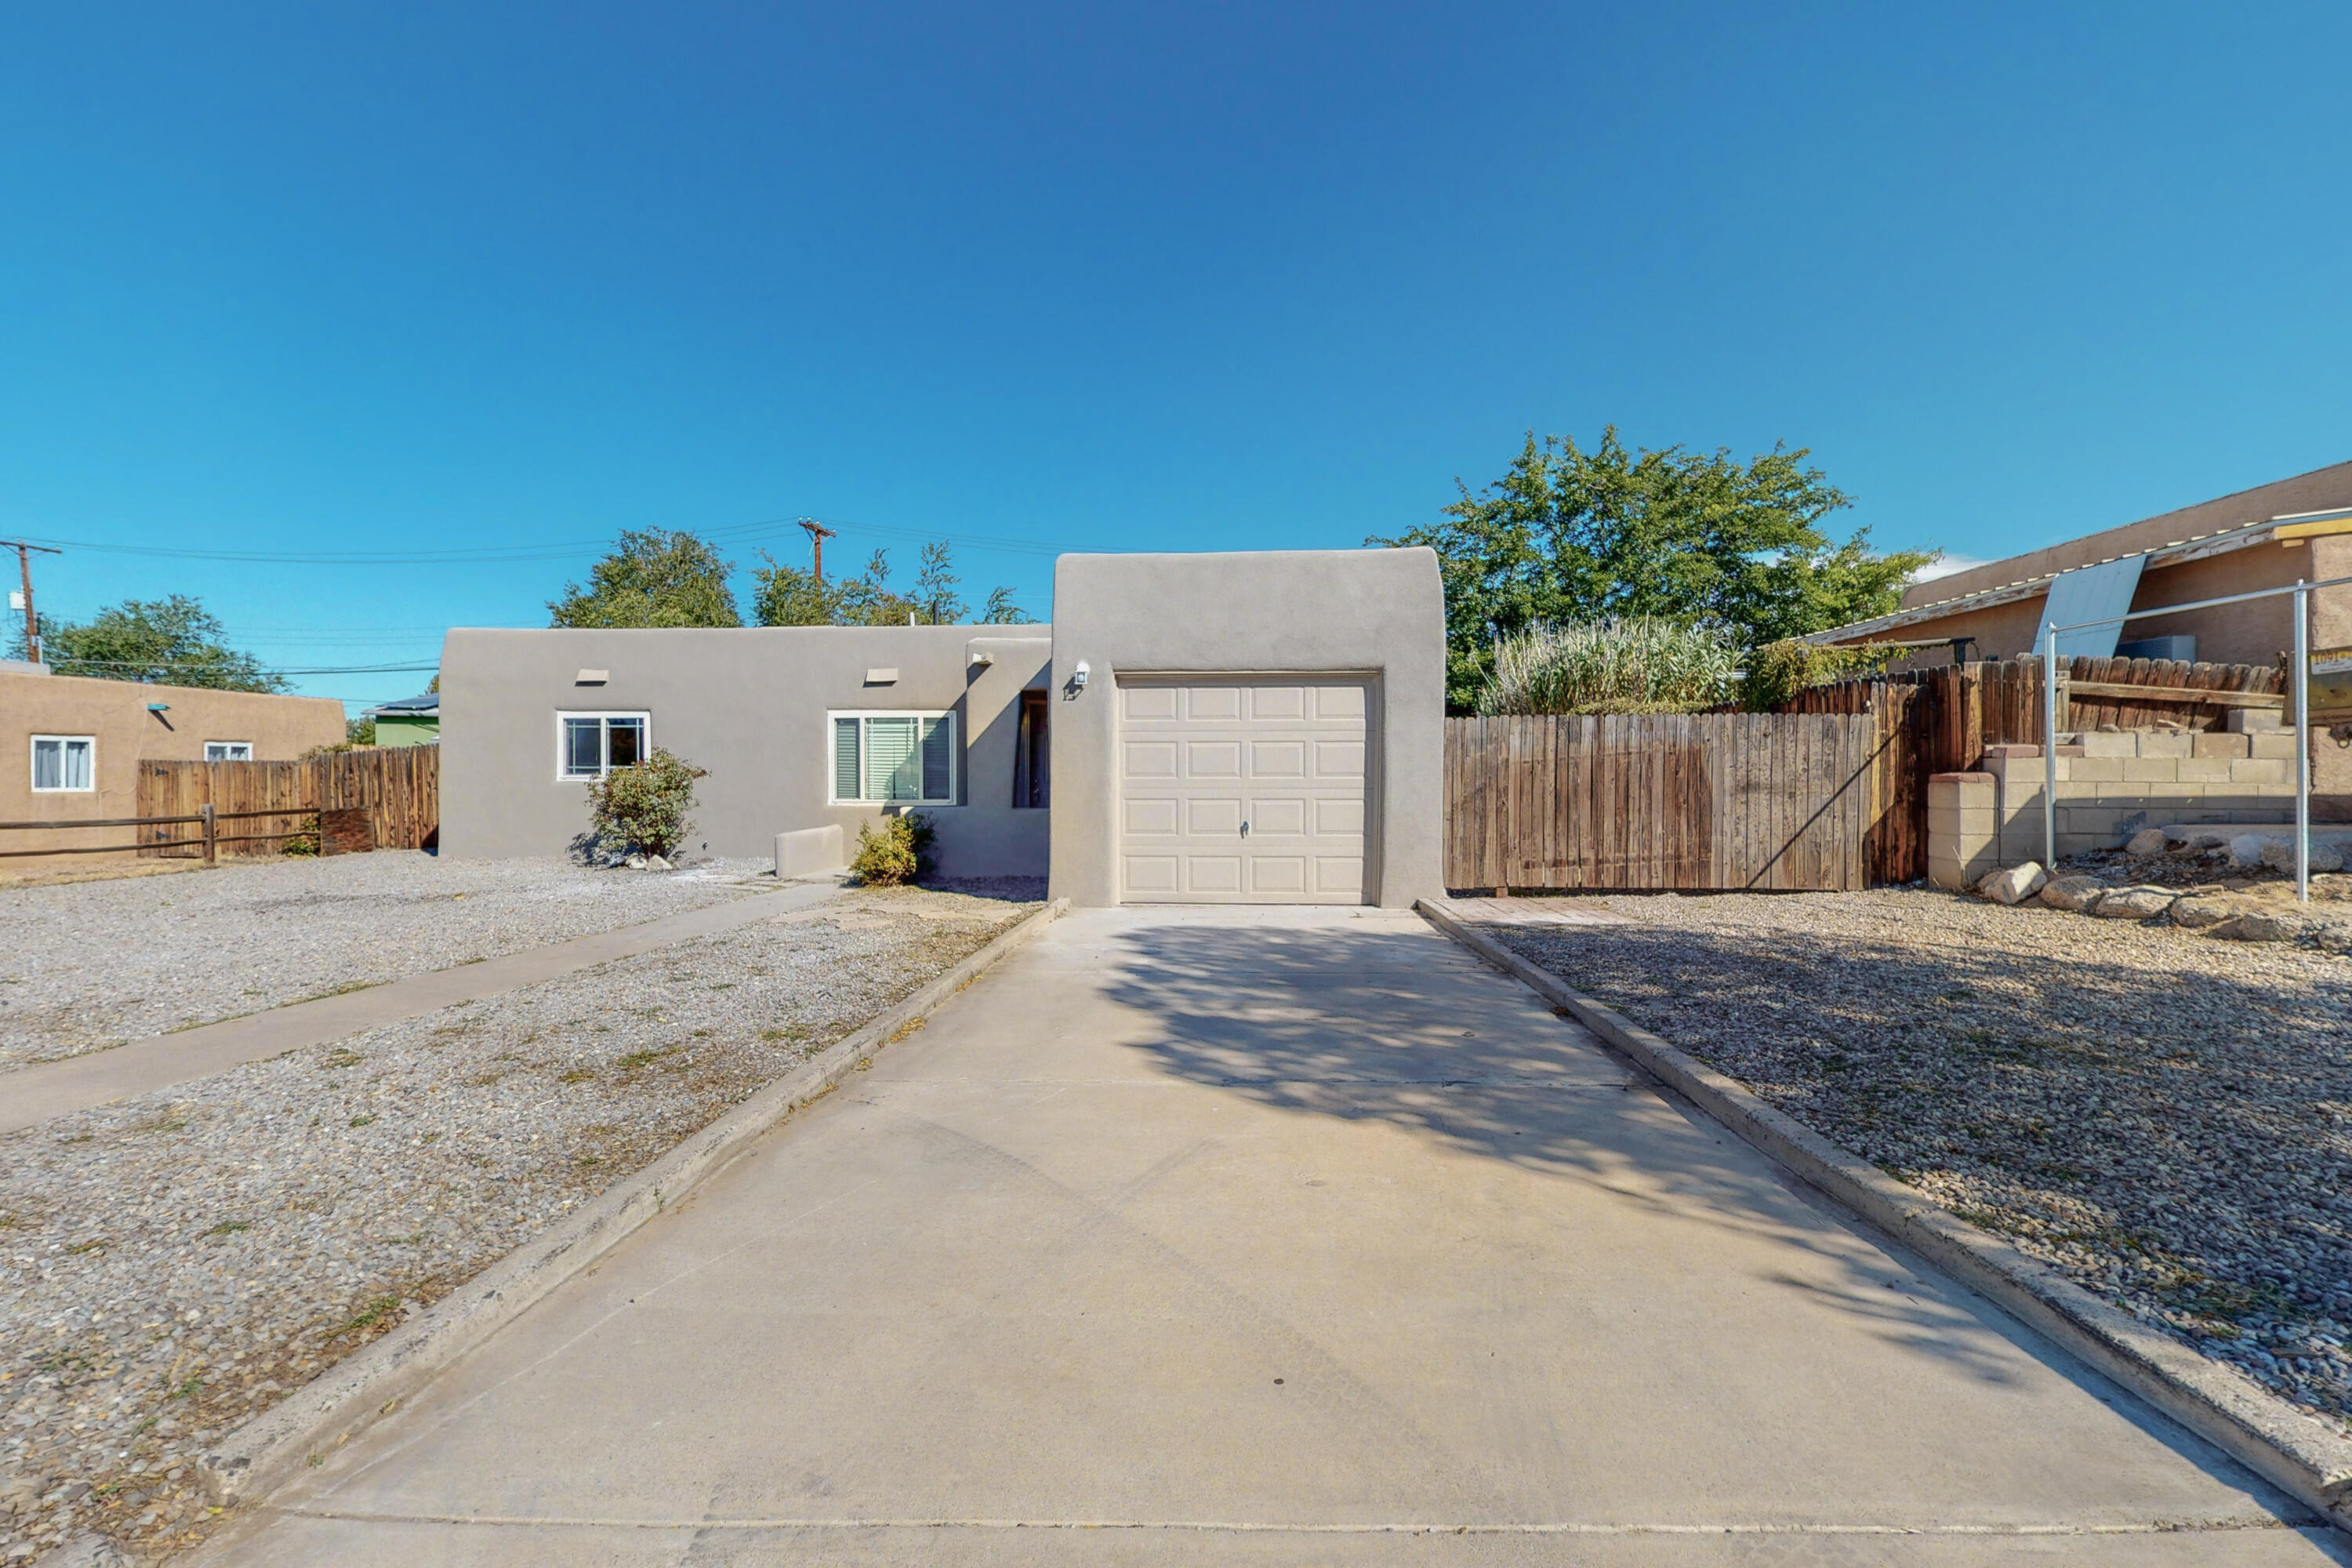 MOVE-IN Ready! Come see this 3 bedroom 2 full bath, recently updated home in a great location. Beautiful floors in bath and throughout the home. Large backyard with possible backyard access.